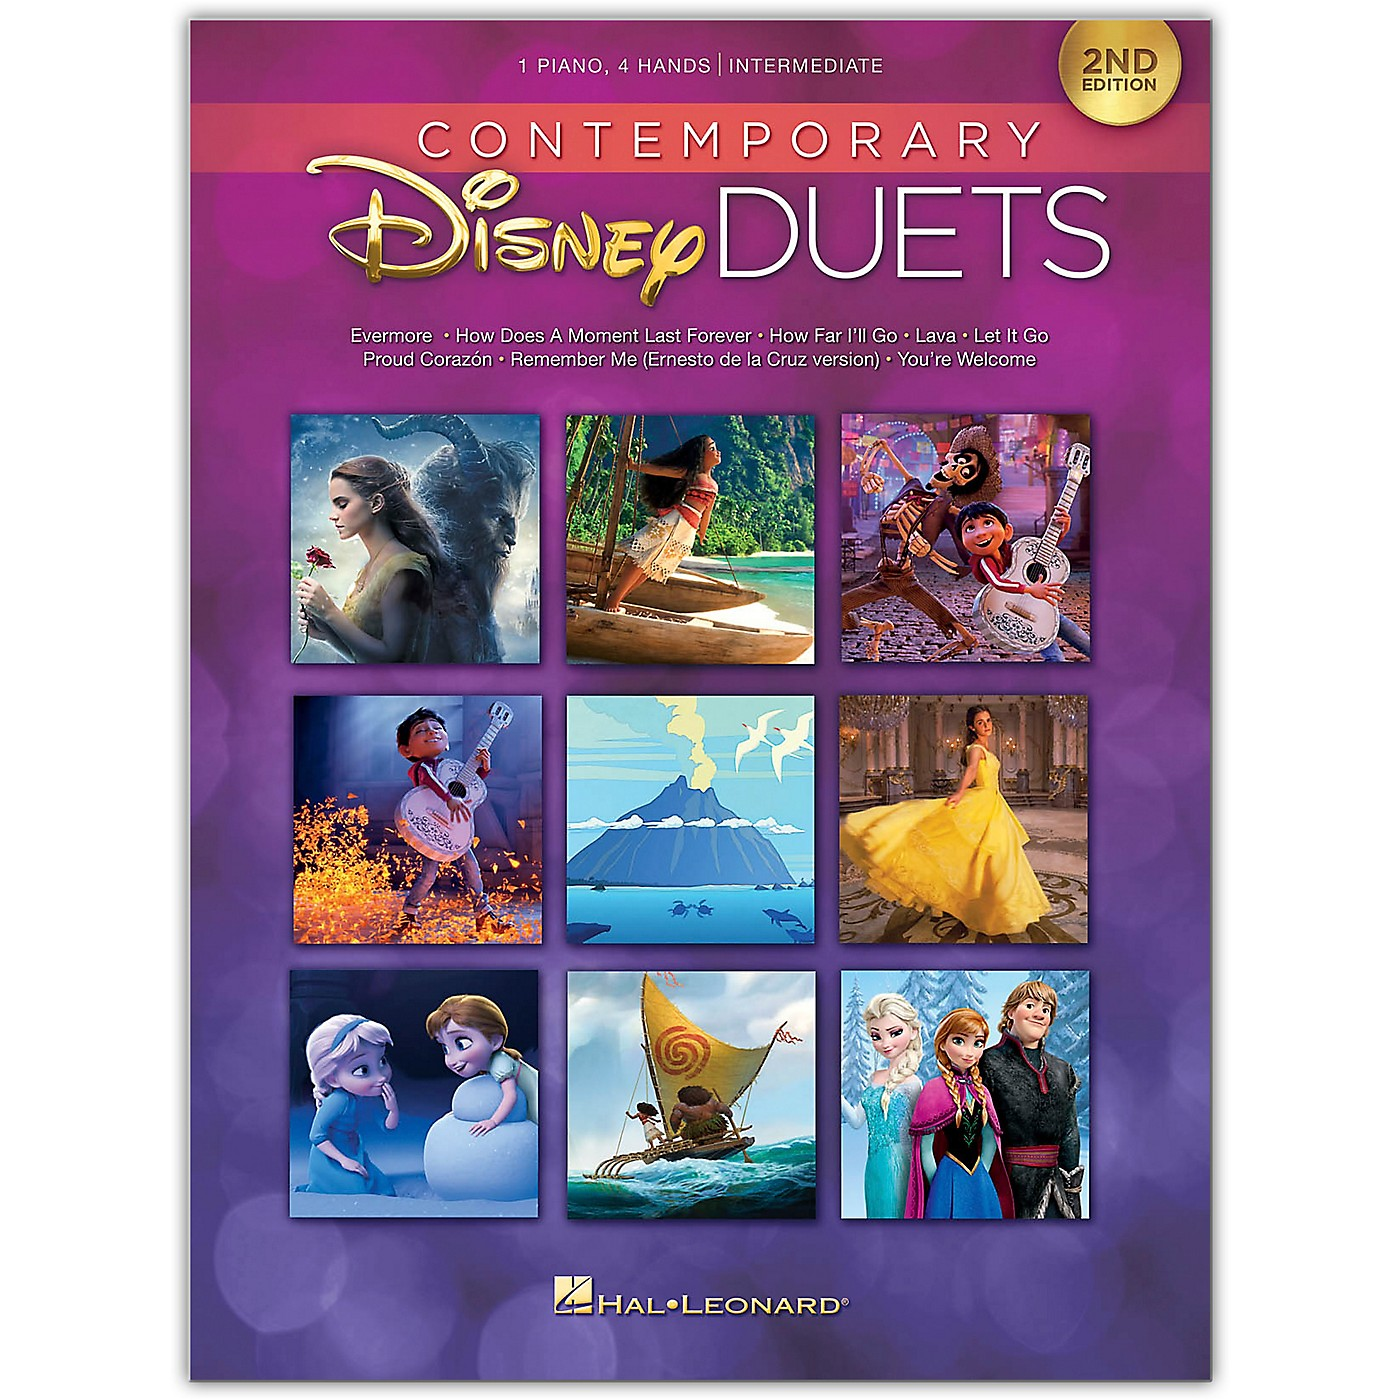 Hal Leonard Contemporary Disney Duets - 2nd Edition Piano Duet Songbook thumbnail